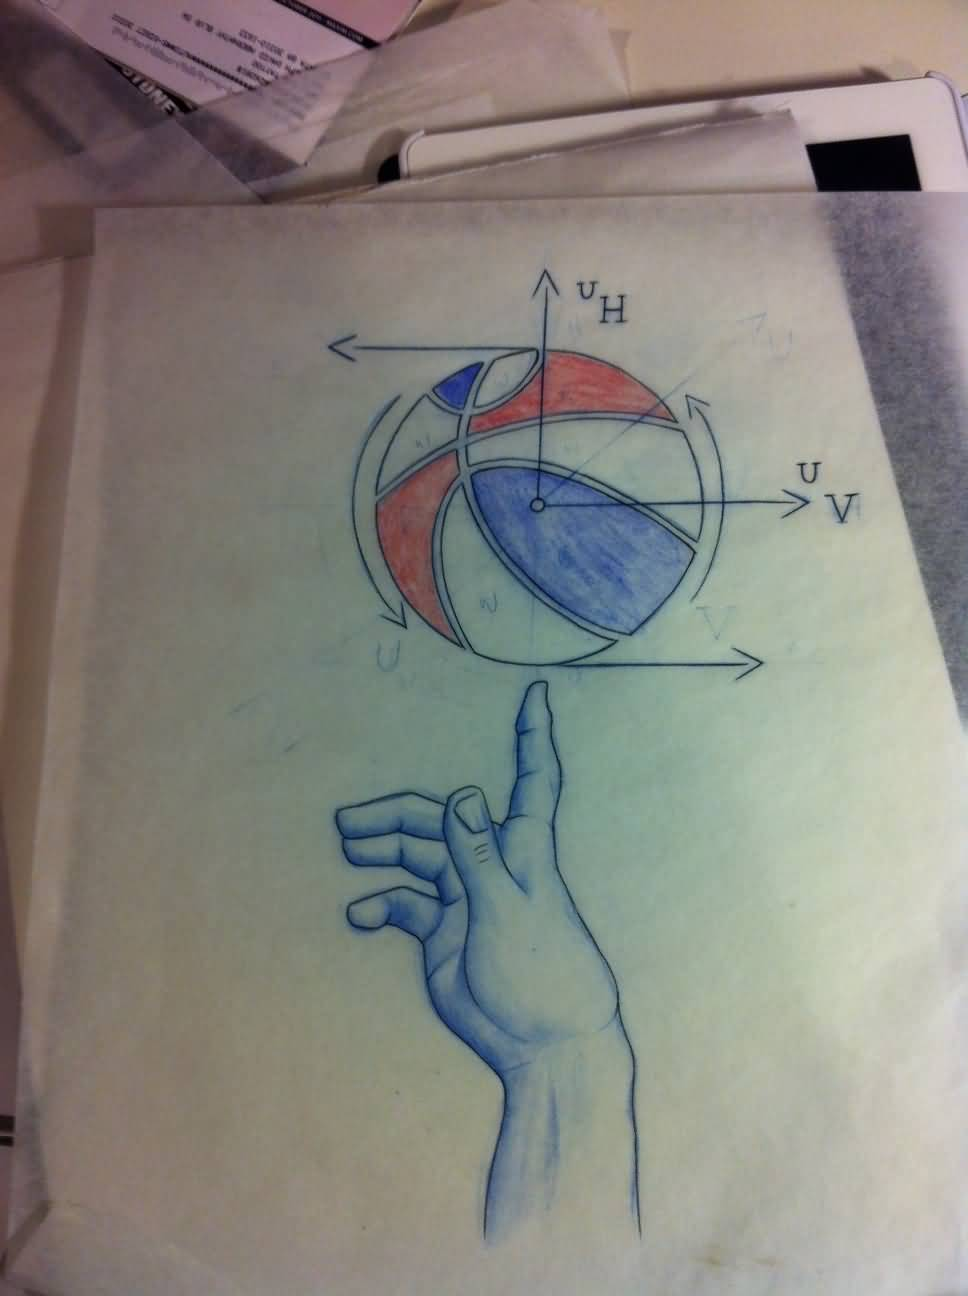 Colorful Basketball Physics Equation Tattoo Design With Cool Hand